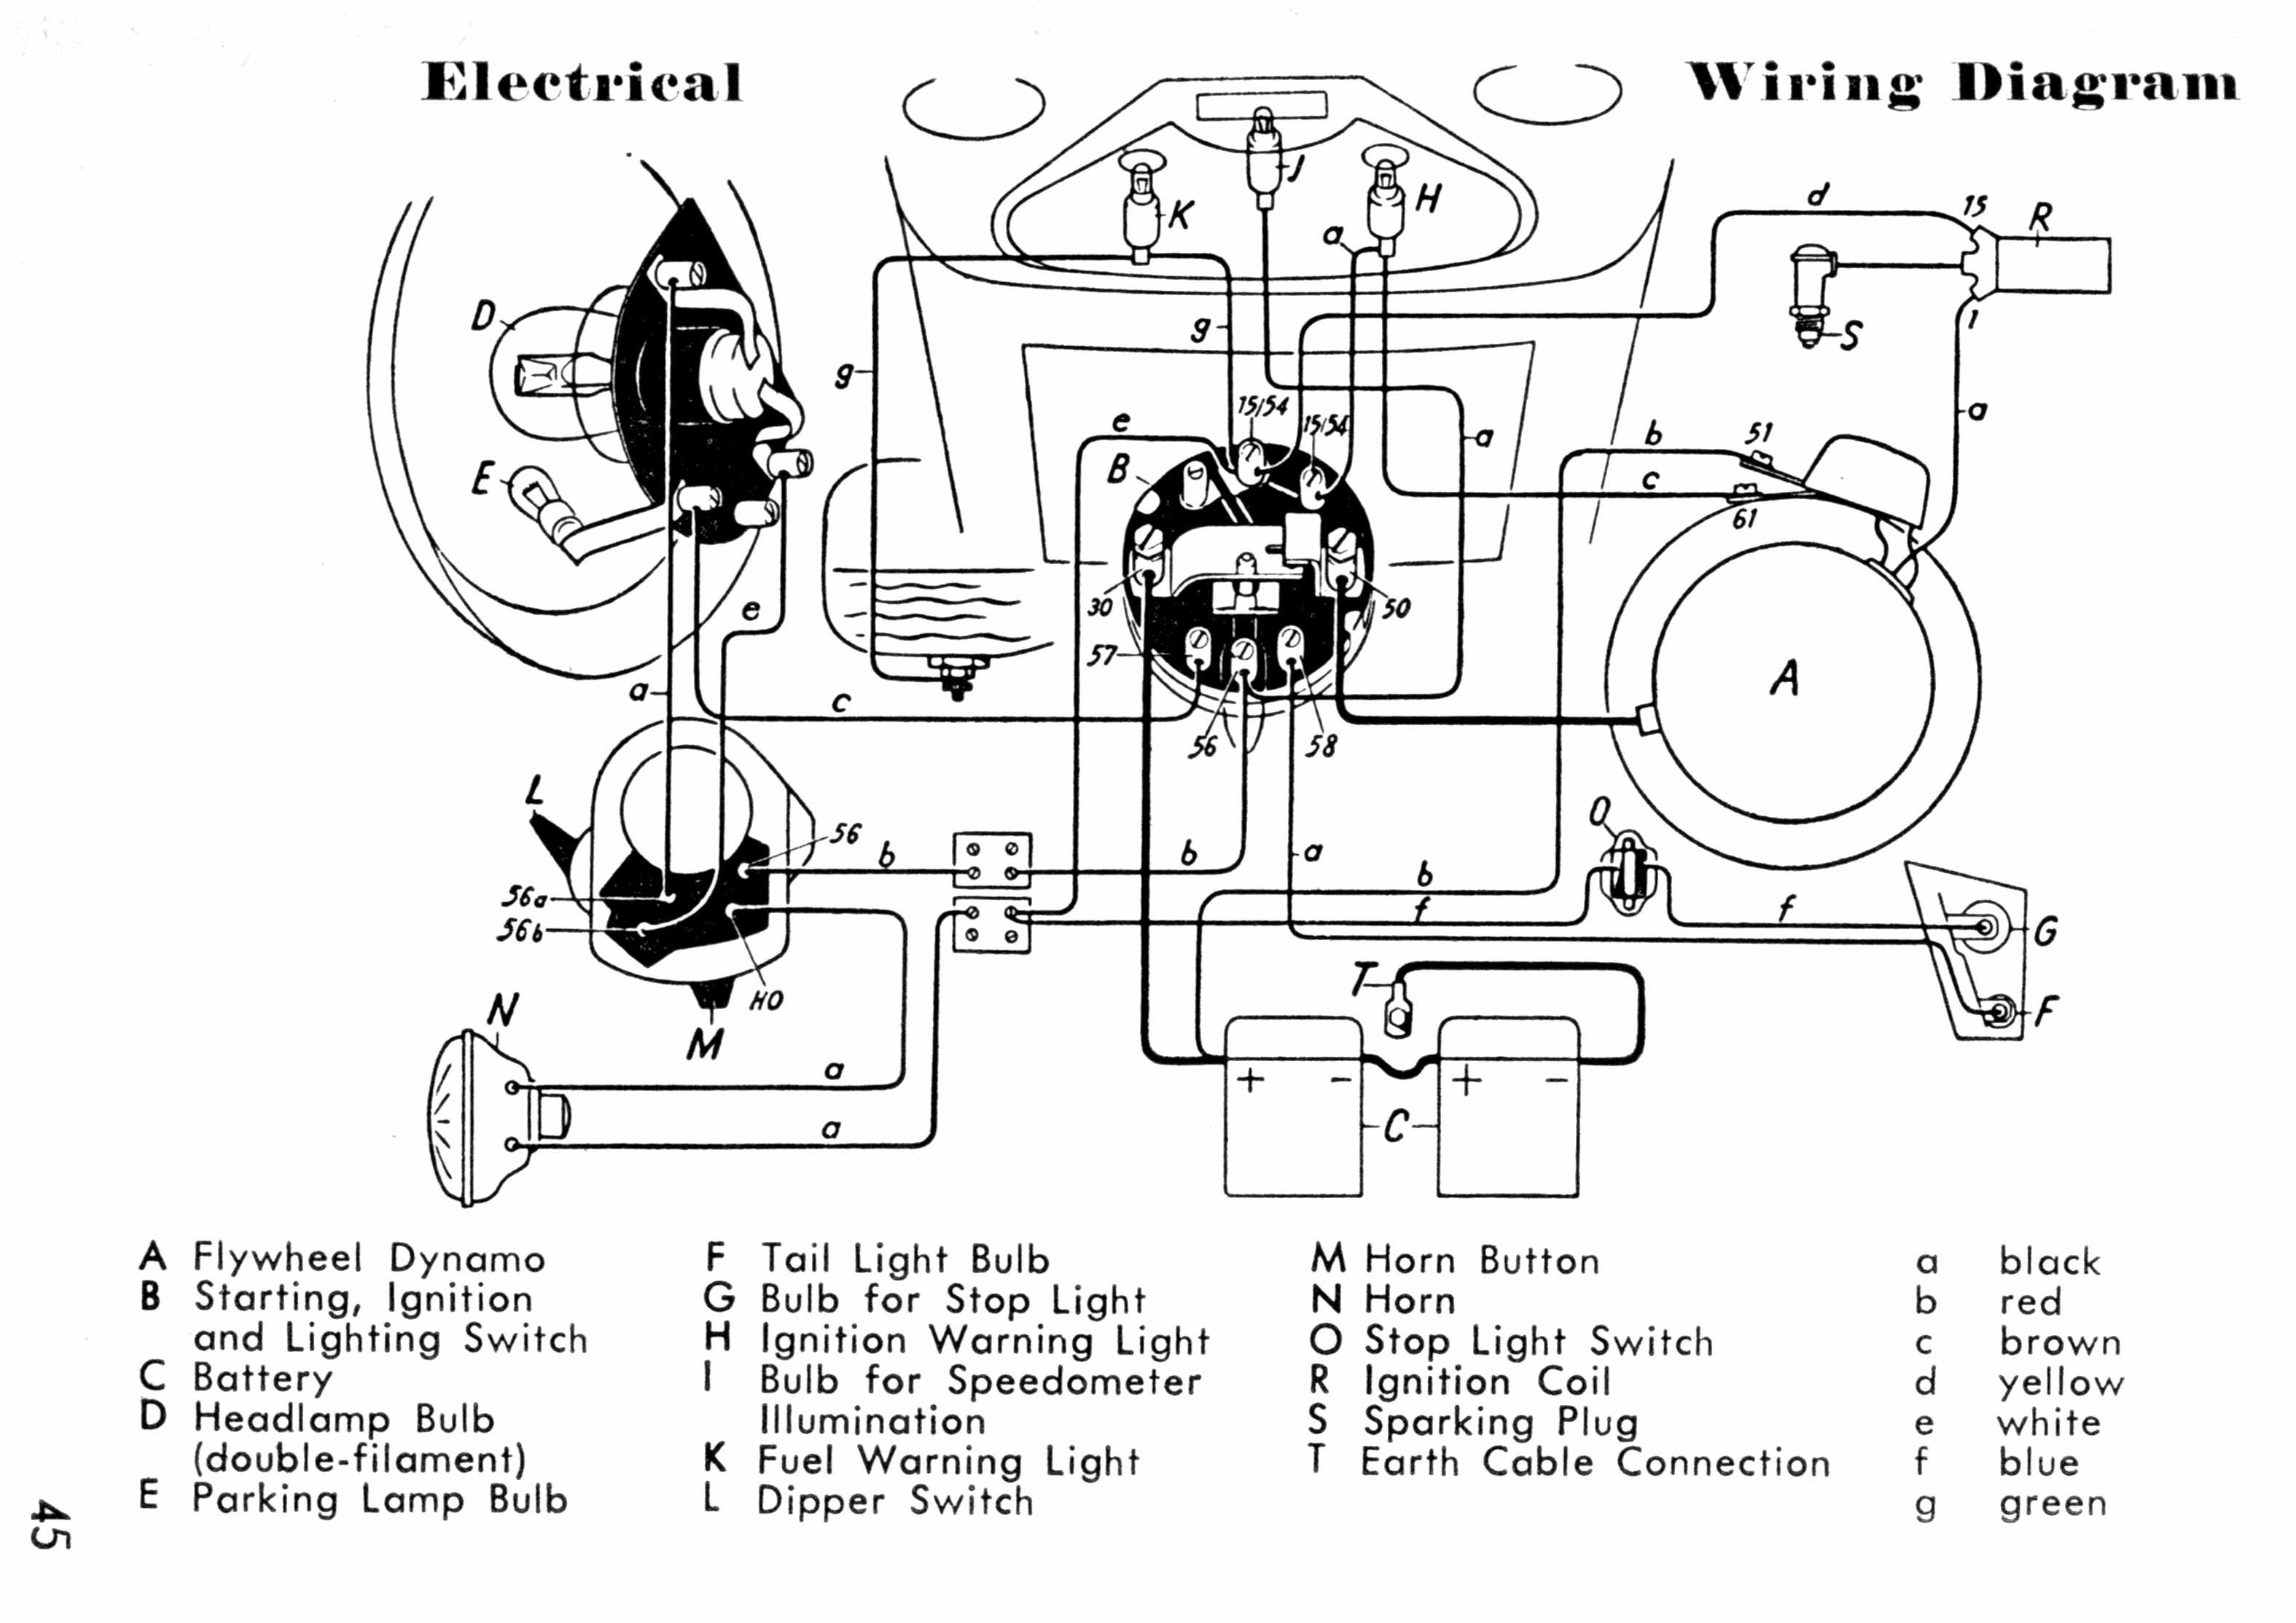 3ee73df4e7463c417fc349eccfcaade4 schematic electric scooter wiring diagram closet pinterest 49Cc Scooter Wiring Diagram at eliteediting.co